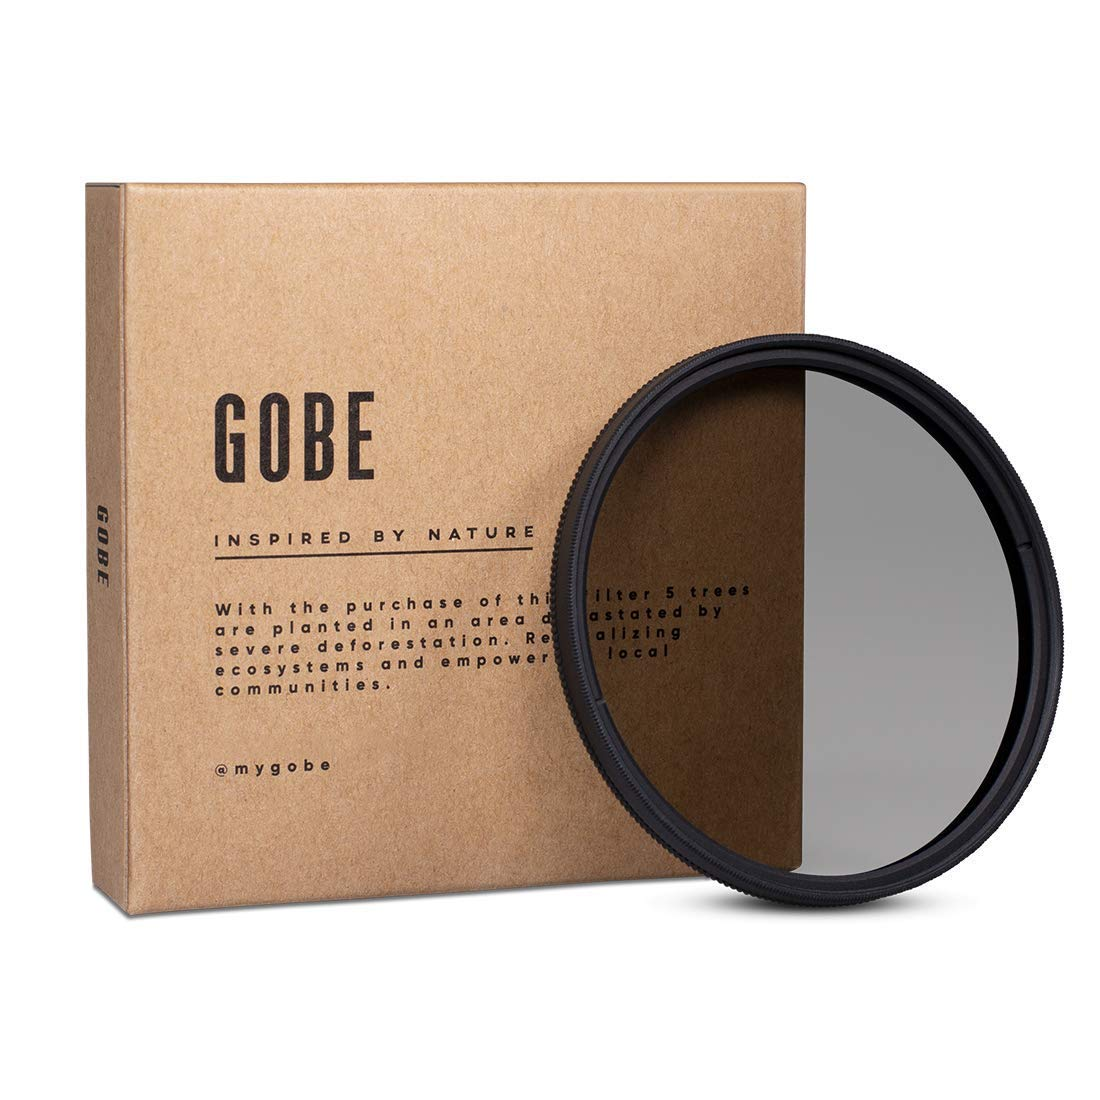 Gobe CPL 40.5mm Japan Optics 12-Layer Multi-Coated Polarized Filter G40CPL1P